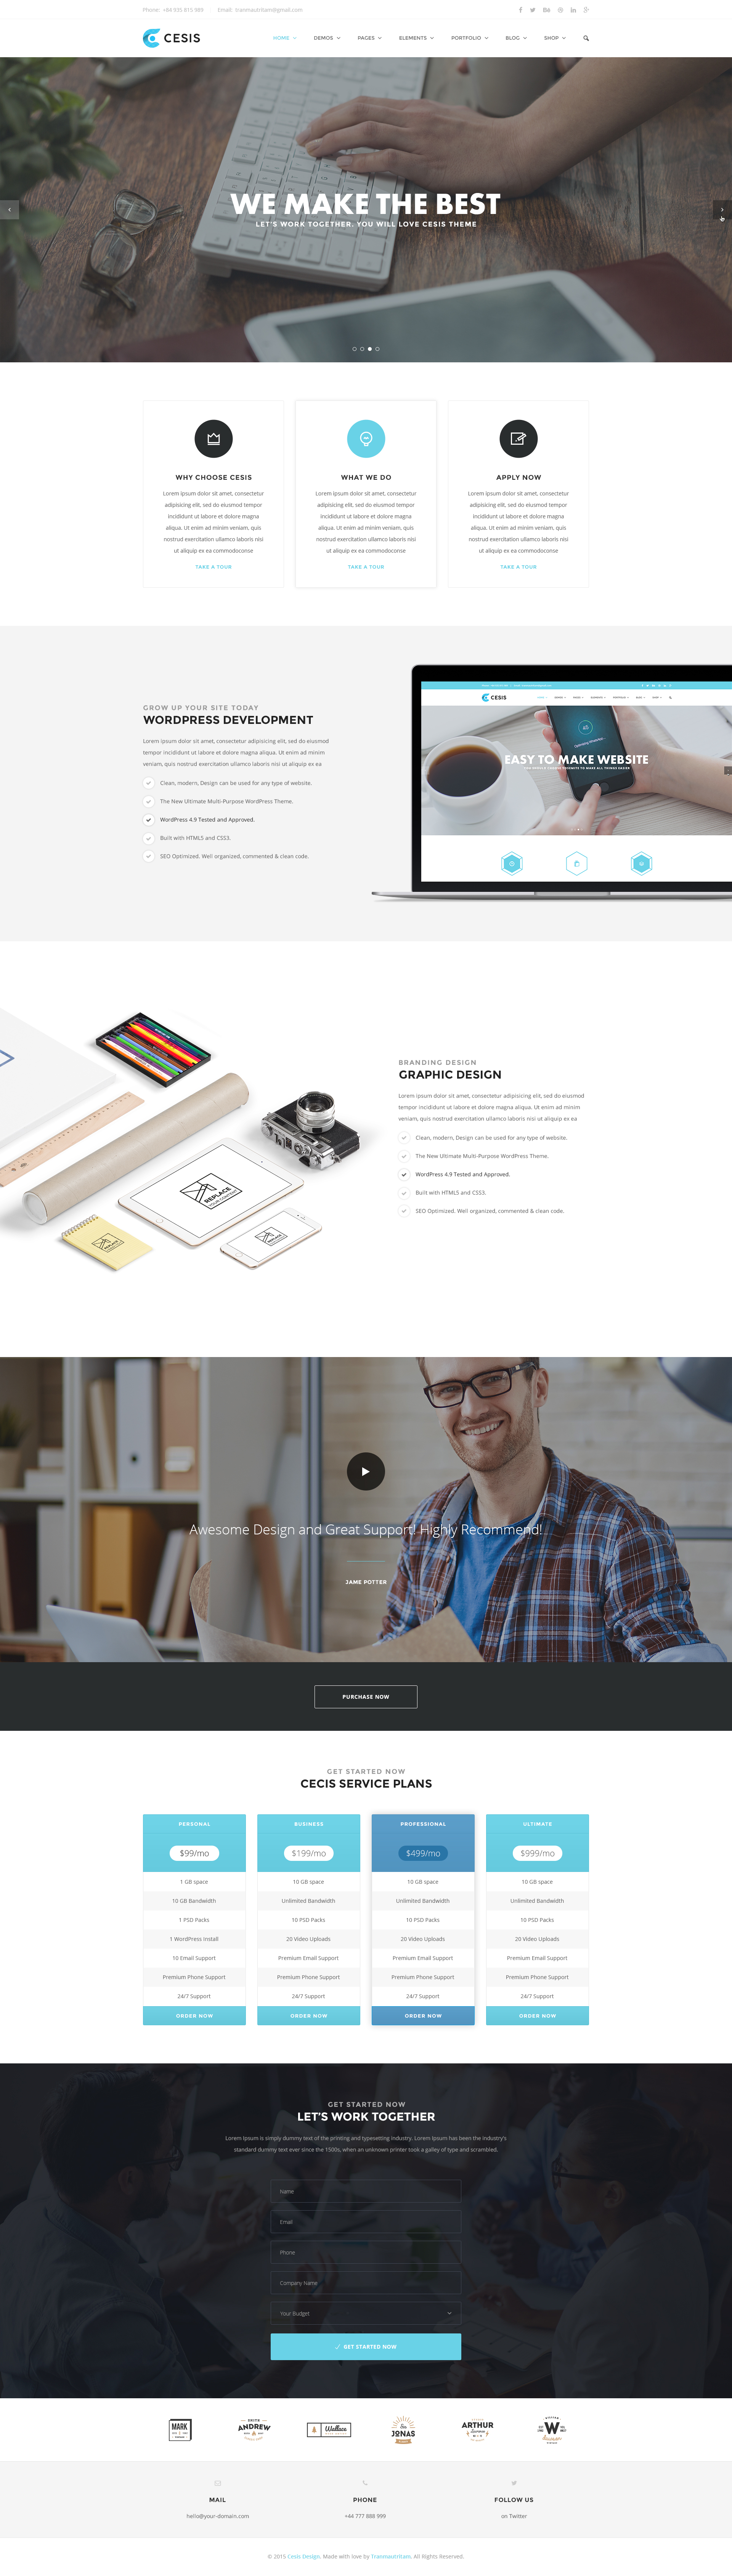 Cesis Ultimate MultiPurpose PSD Template By Tranmautritam - Awesome the ultimate listing presentation concept